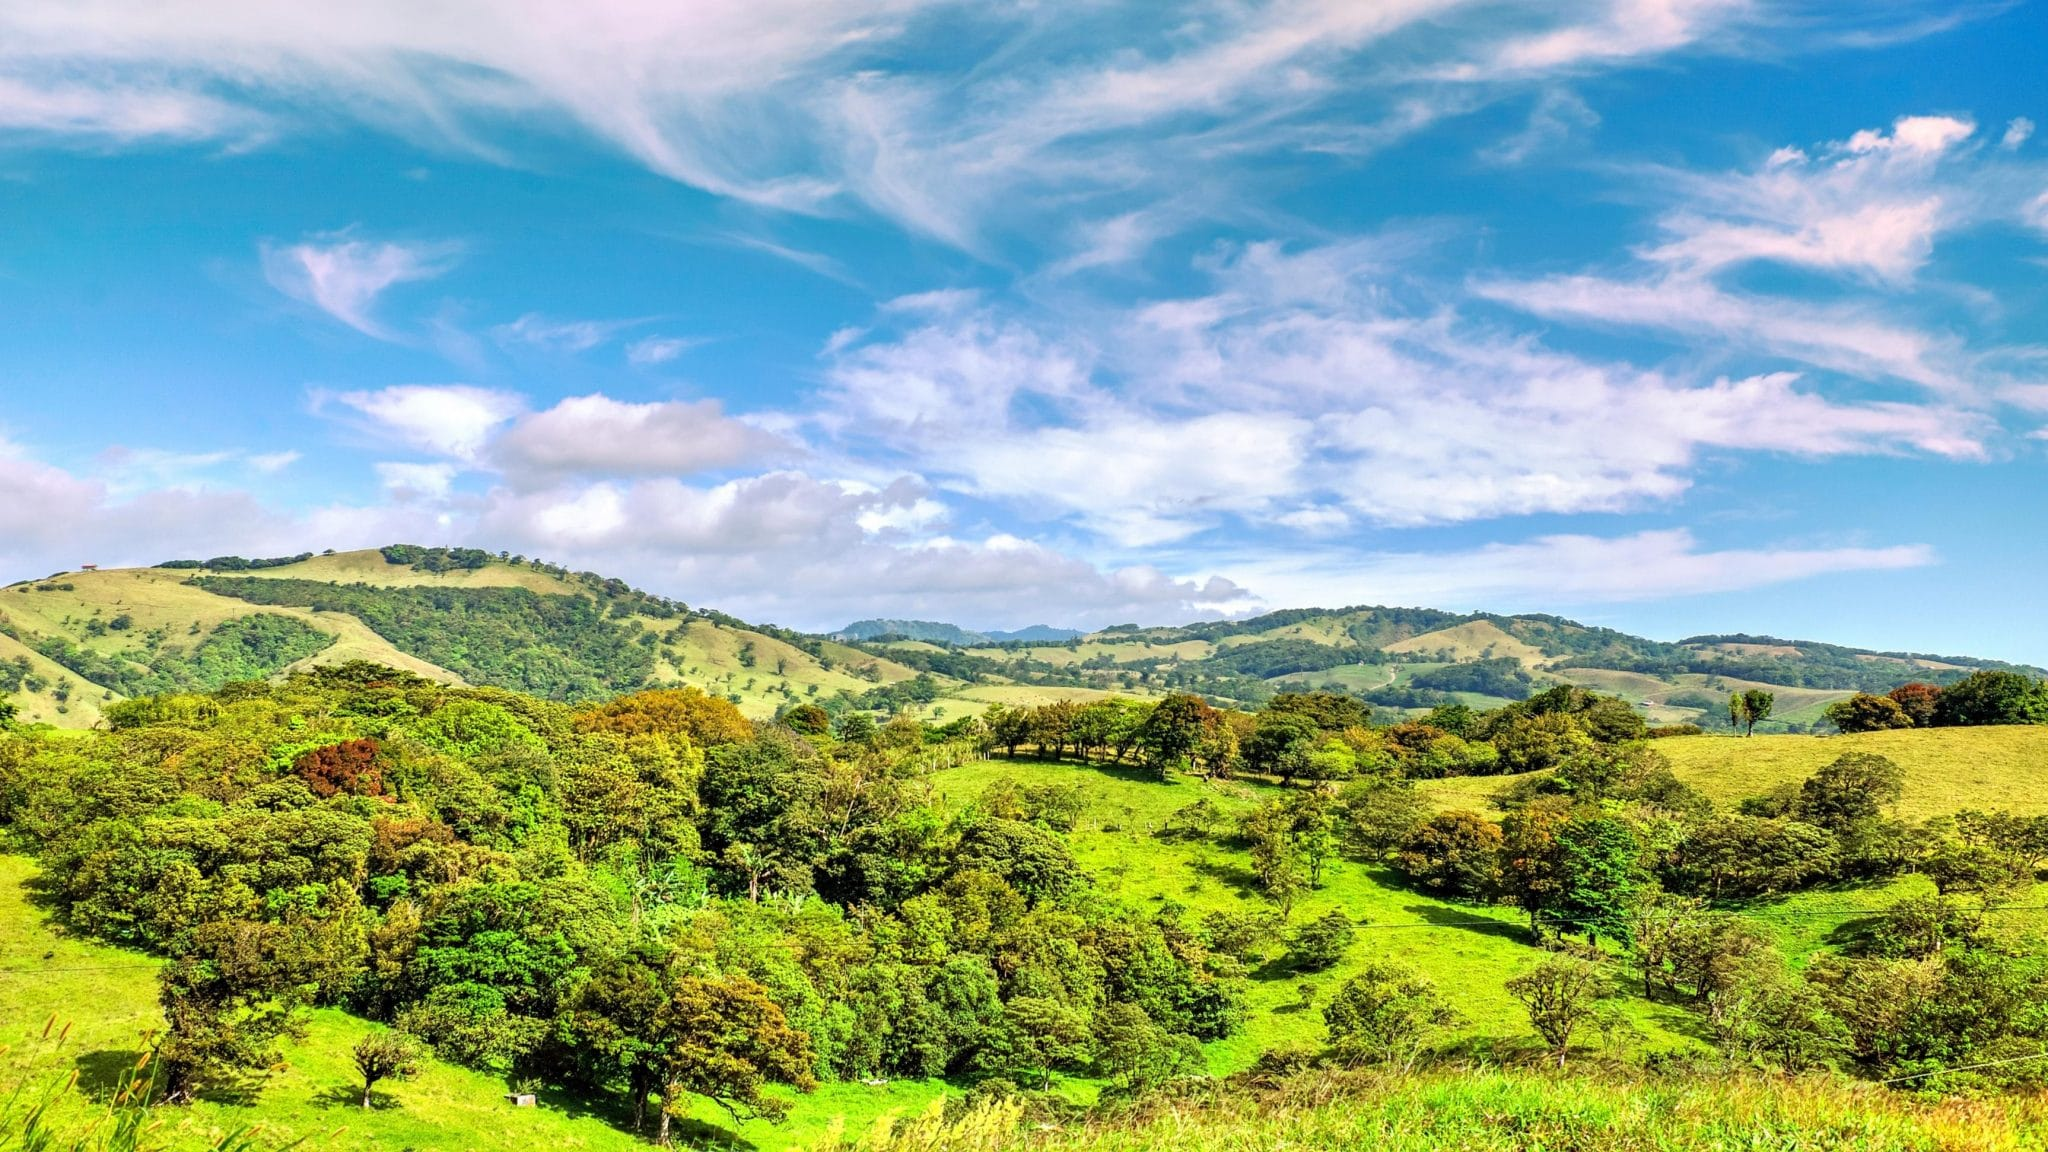 Monteverde Cloud Forest Reserve, Monteverde Cloud Forest Reserve: Must-Know Information and Guide, Phenomenal Place